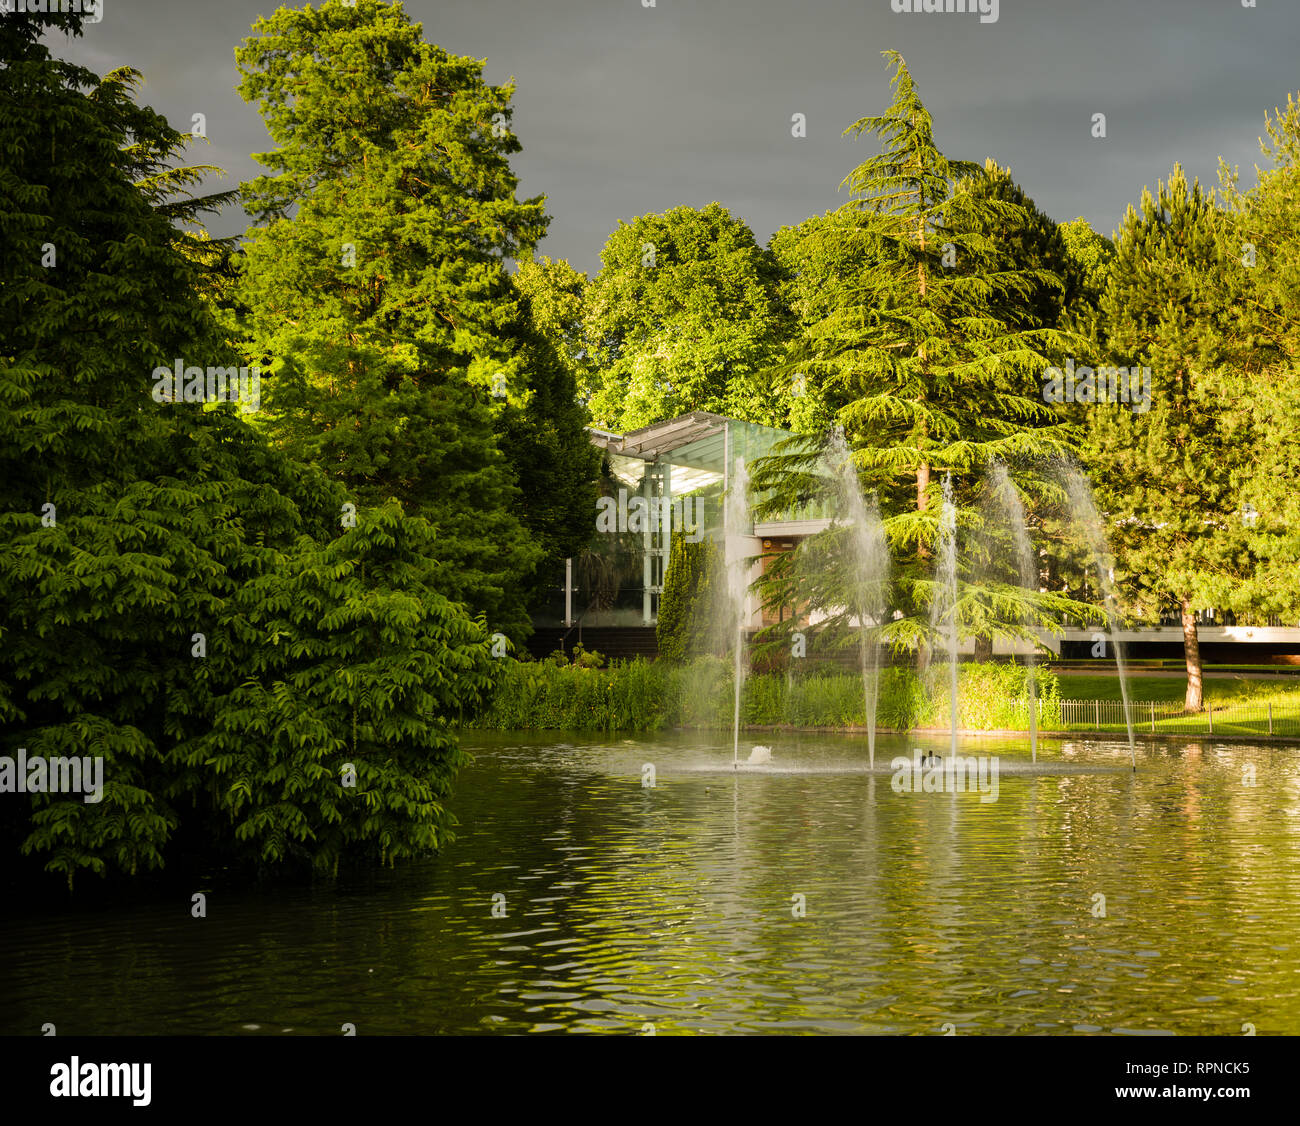 Jephson Gardens lake with fountain and the Tropical House in bright sunlight with a dark sky. - Stock Image